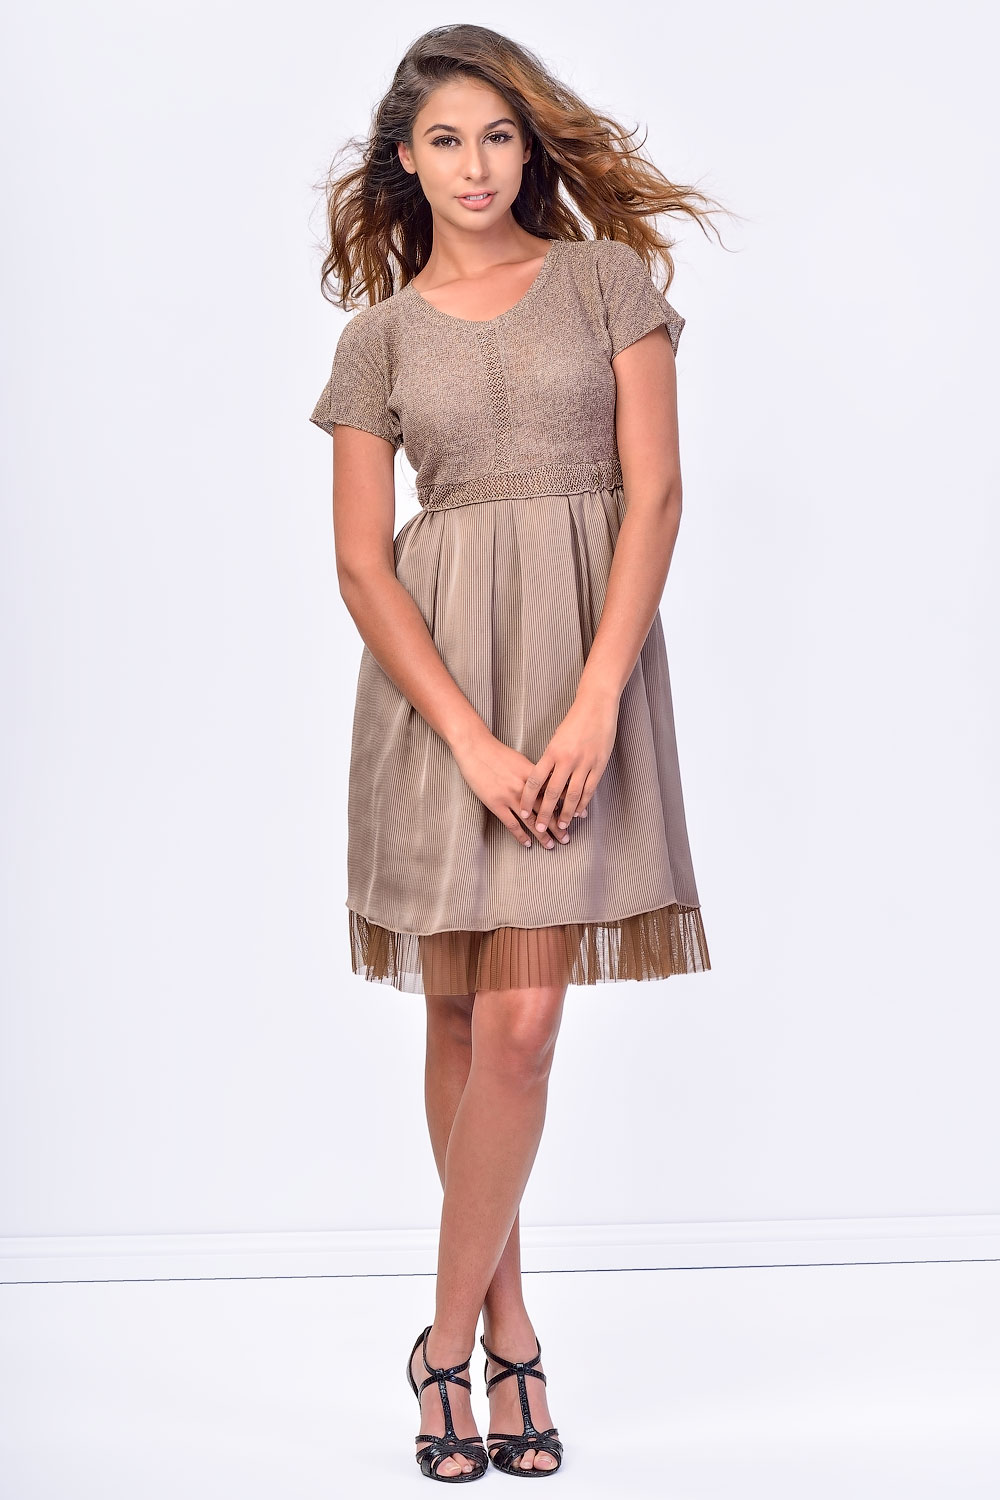 93cb866a371c SISTE S Brown Midi Dress with Lace Bottom. Tap to expand